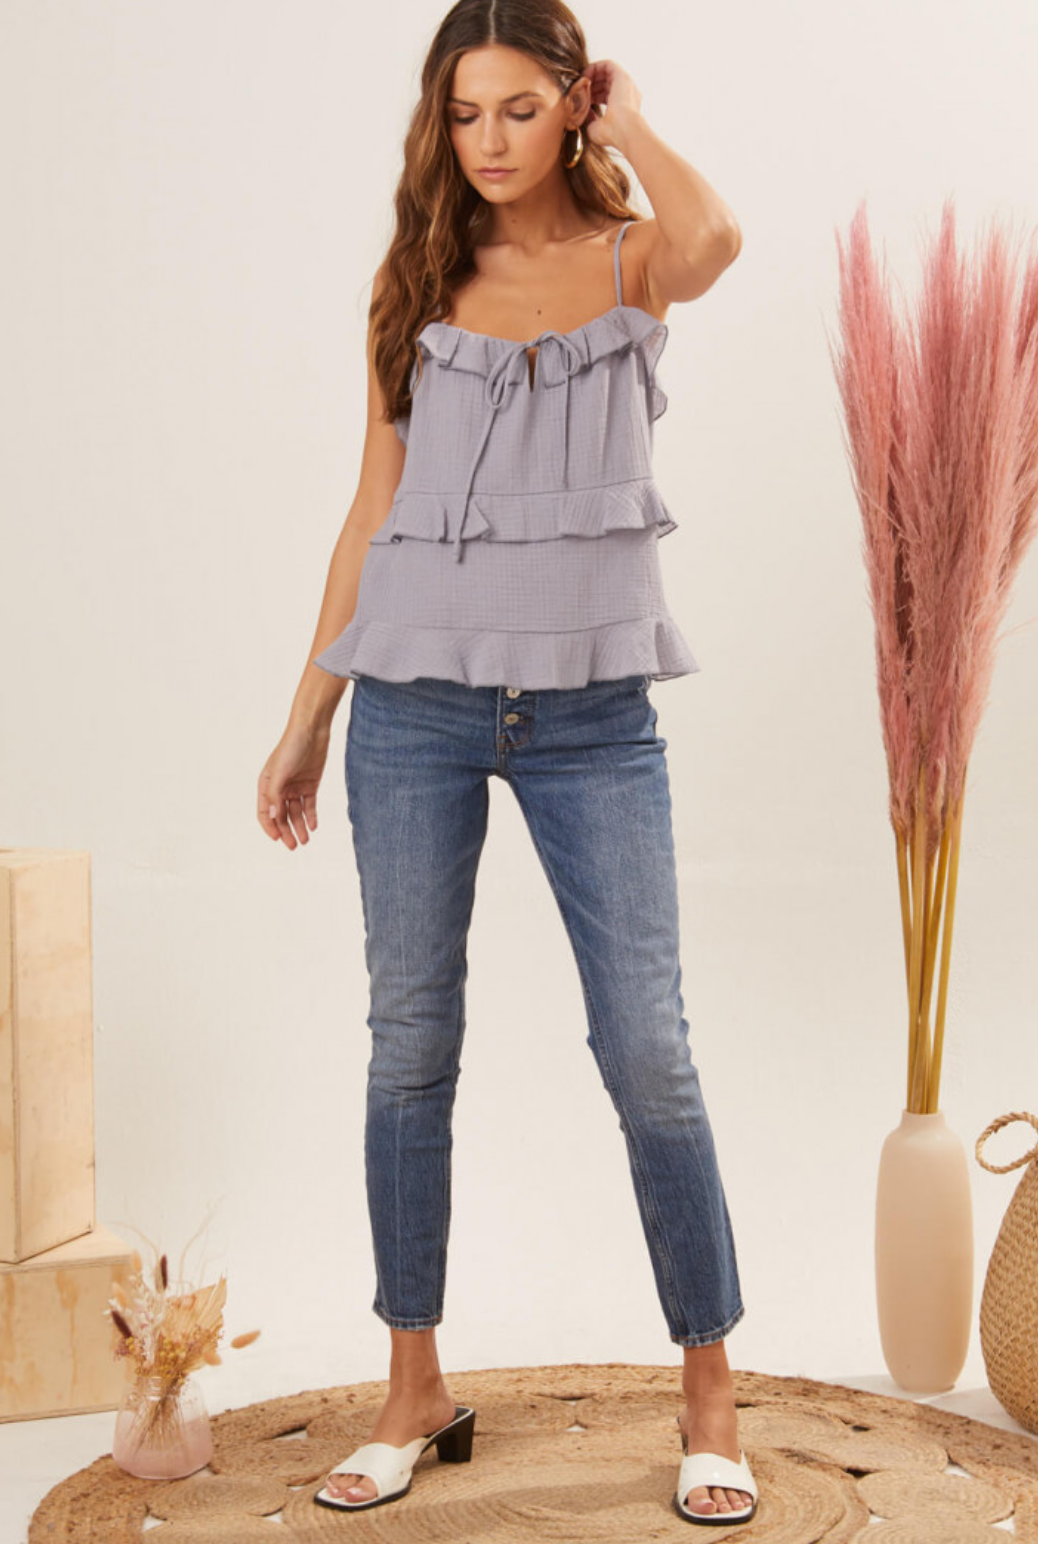 Lush Woven Top Spaghetti Strap Tank - Dusty Orchid